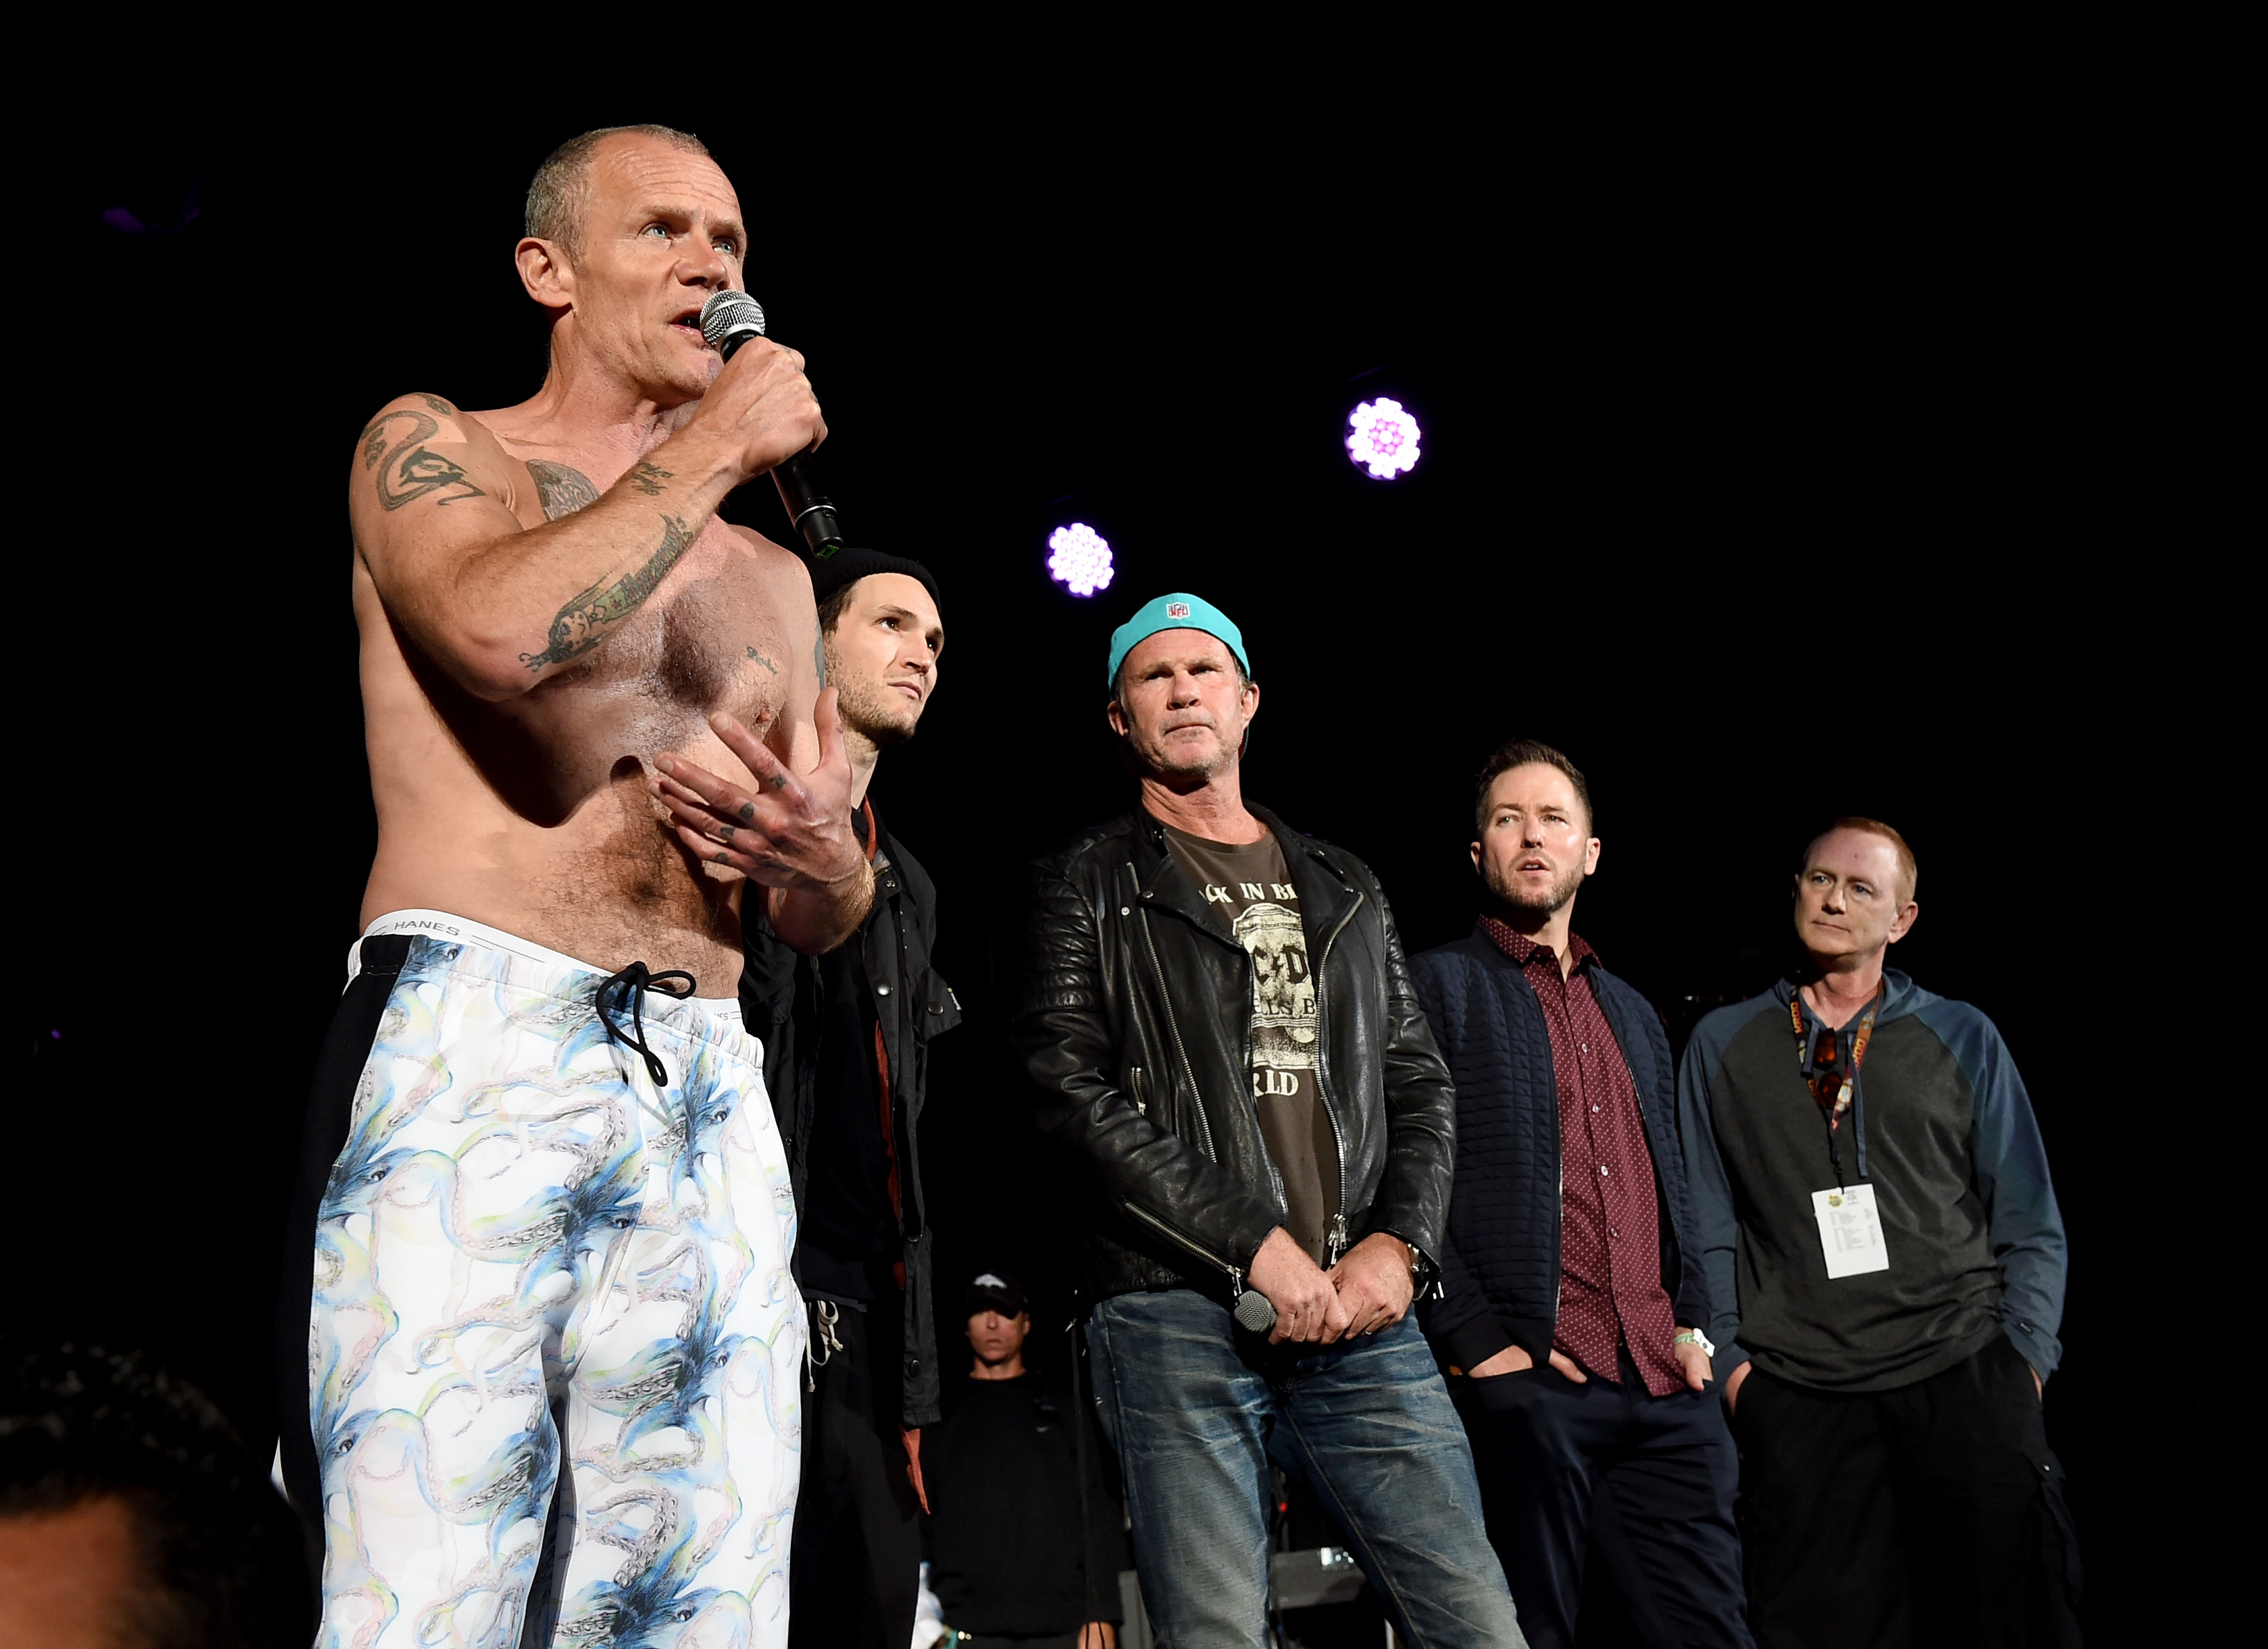 Flea, Josh Klinghoffer, and Chad Smith of music group Red Hot Chili Peppers speak as radio personalities Ted Stryker and Kevin Ryder listen onstage at KROQ Weenie Roast 2016 at Irvine Meadows Amphitheatre on May 14, 2016 in Irvine, California.  (Kevin Winter/Getty)